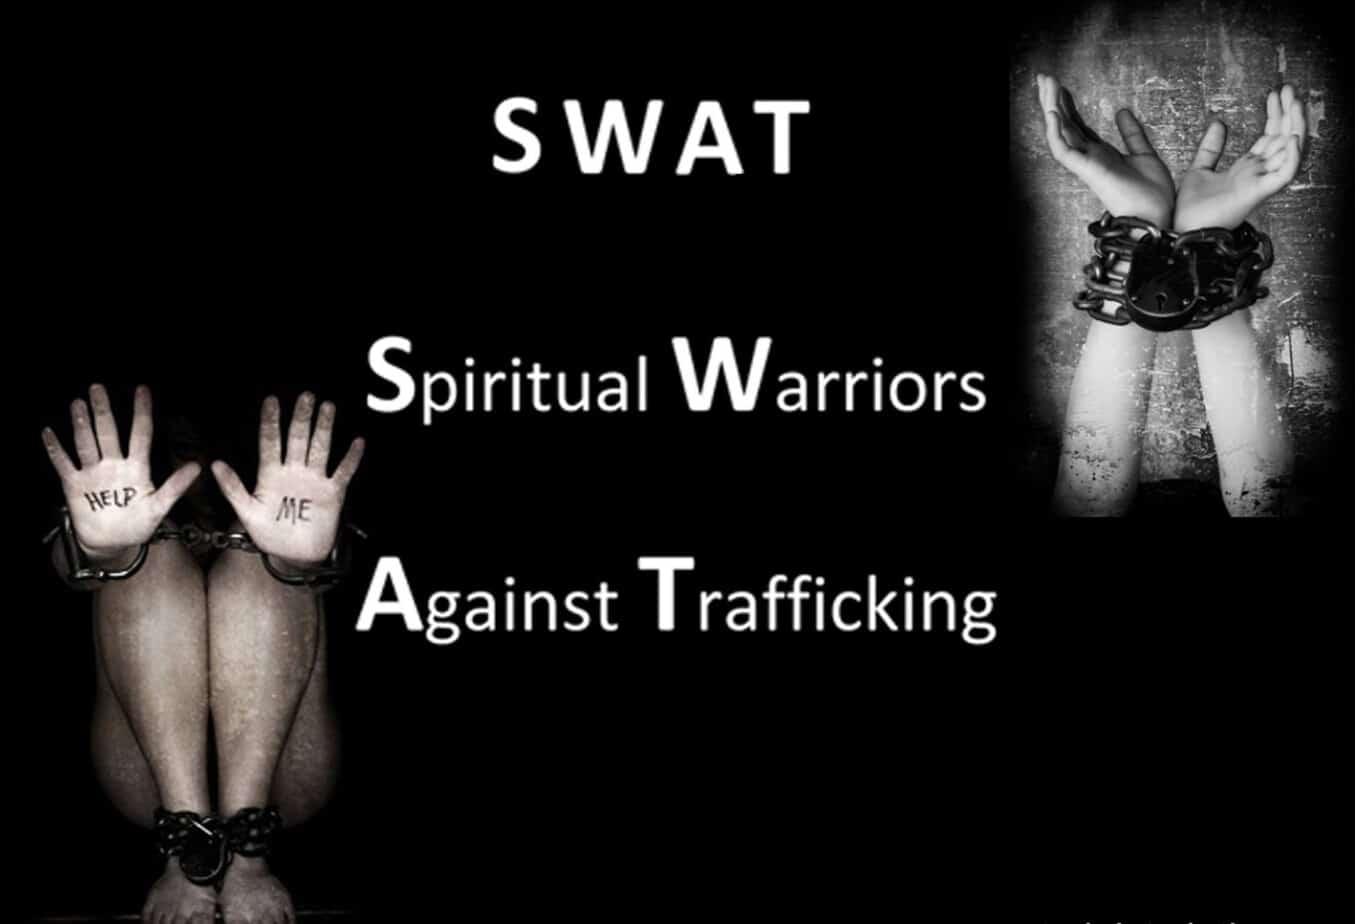 Click to visit SWAT on Facebook